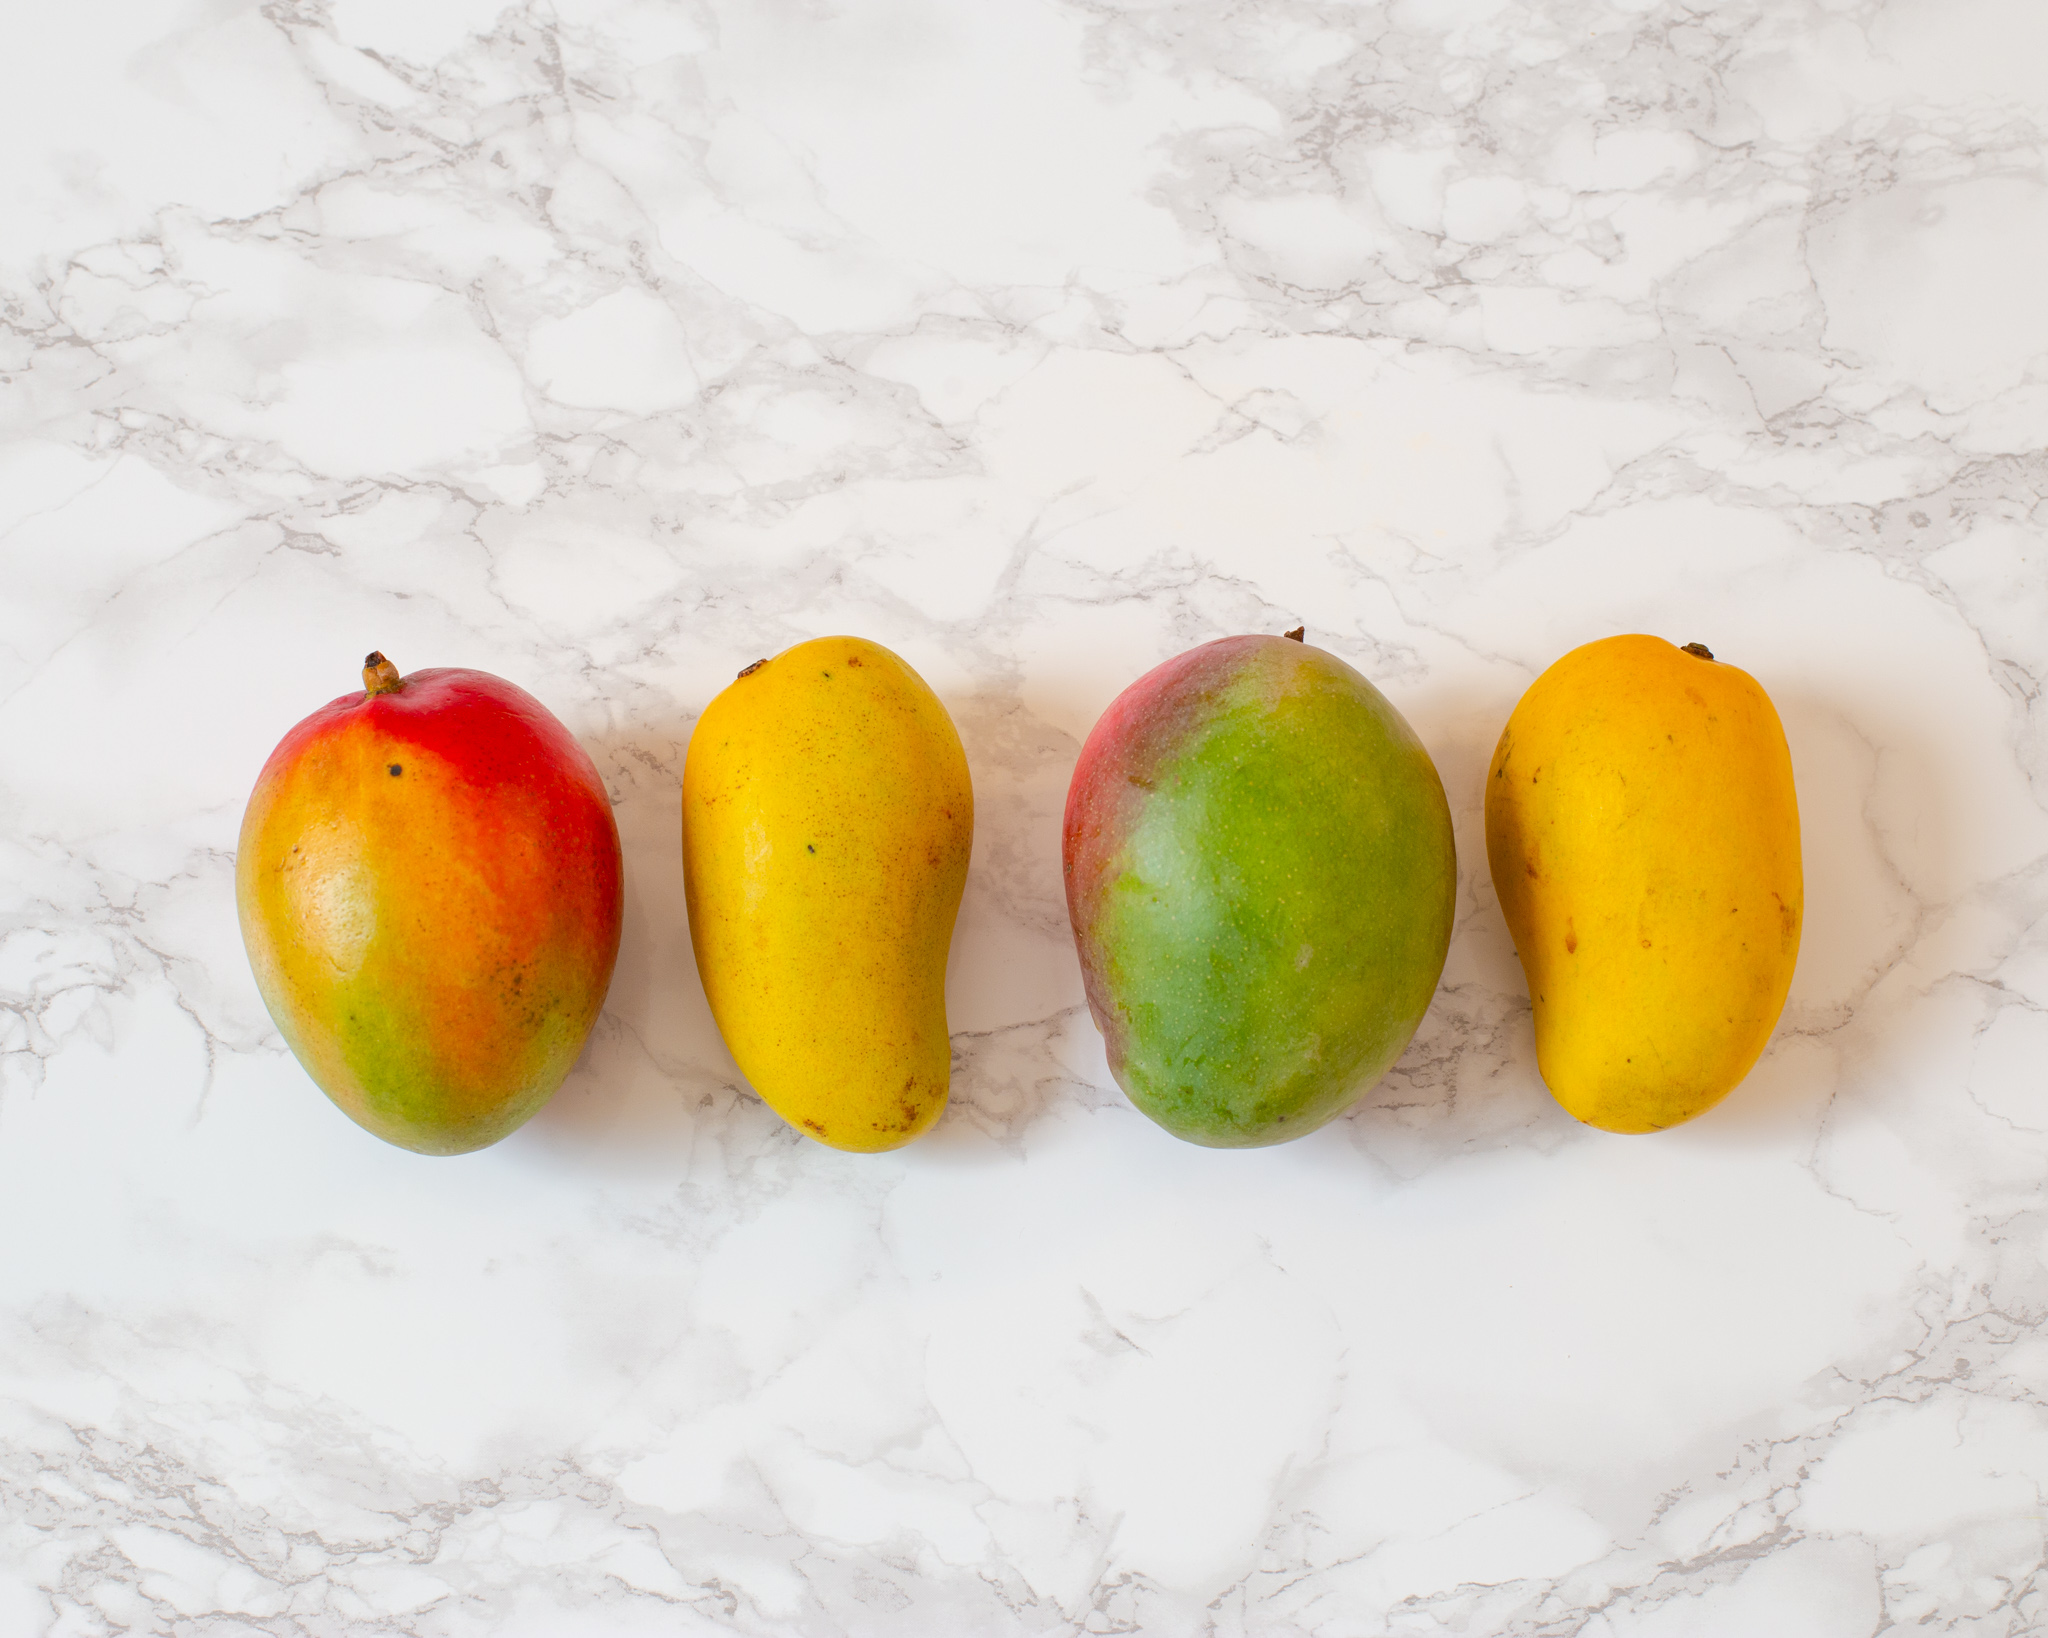 four mangoes lined up in a row on a marble slab